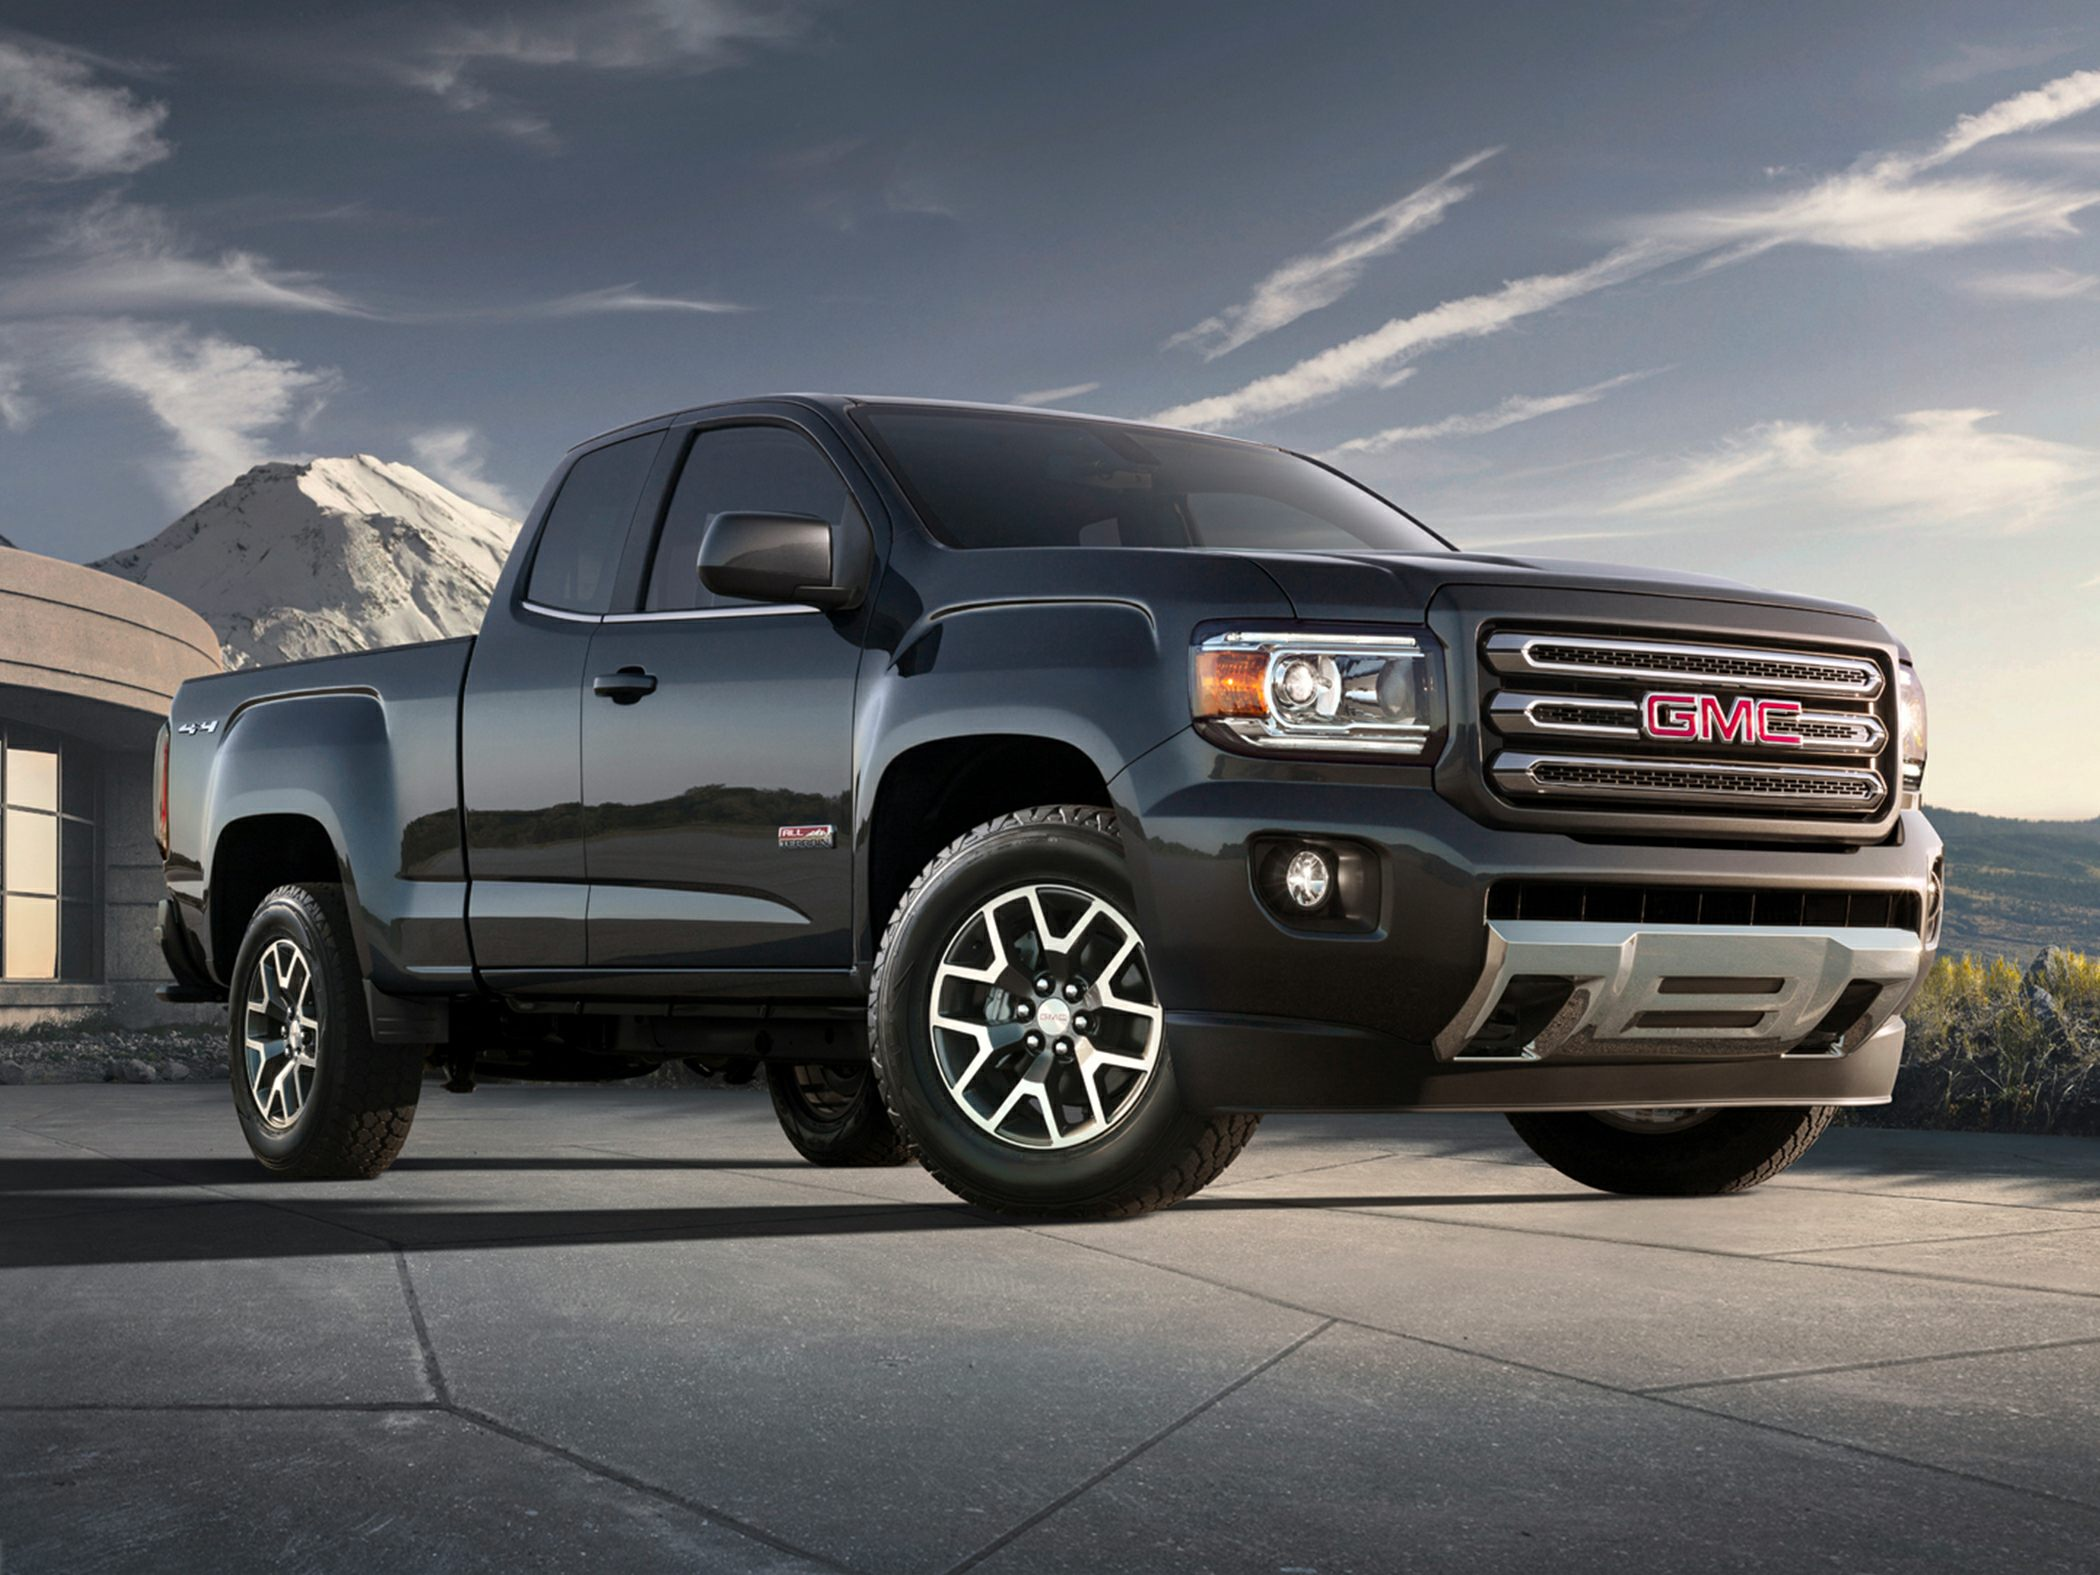 2019 GMC Canyon Pictures & Photos - CarsDirect